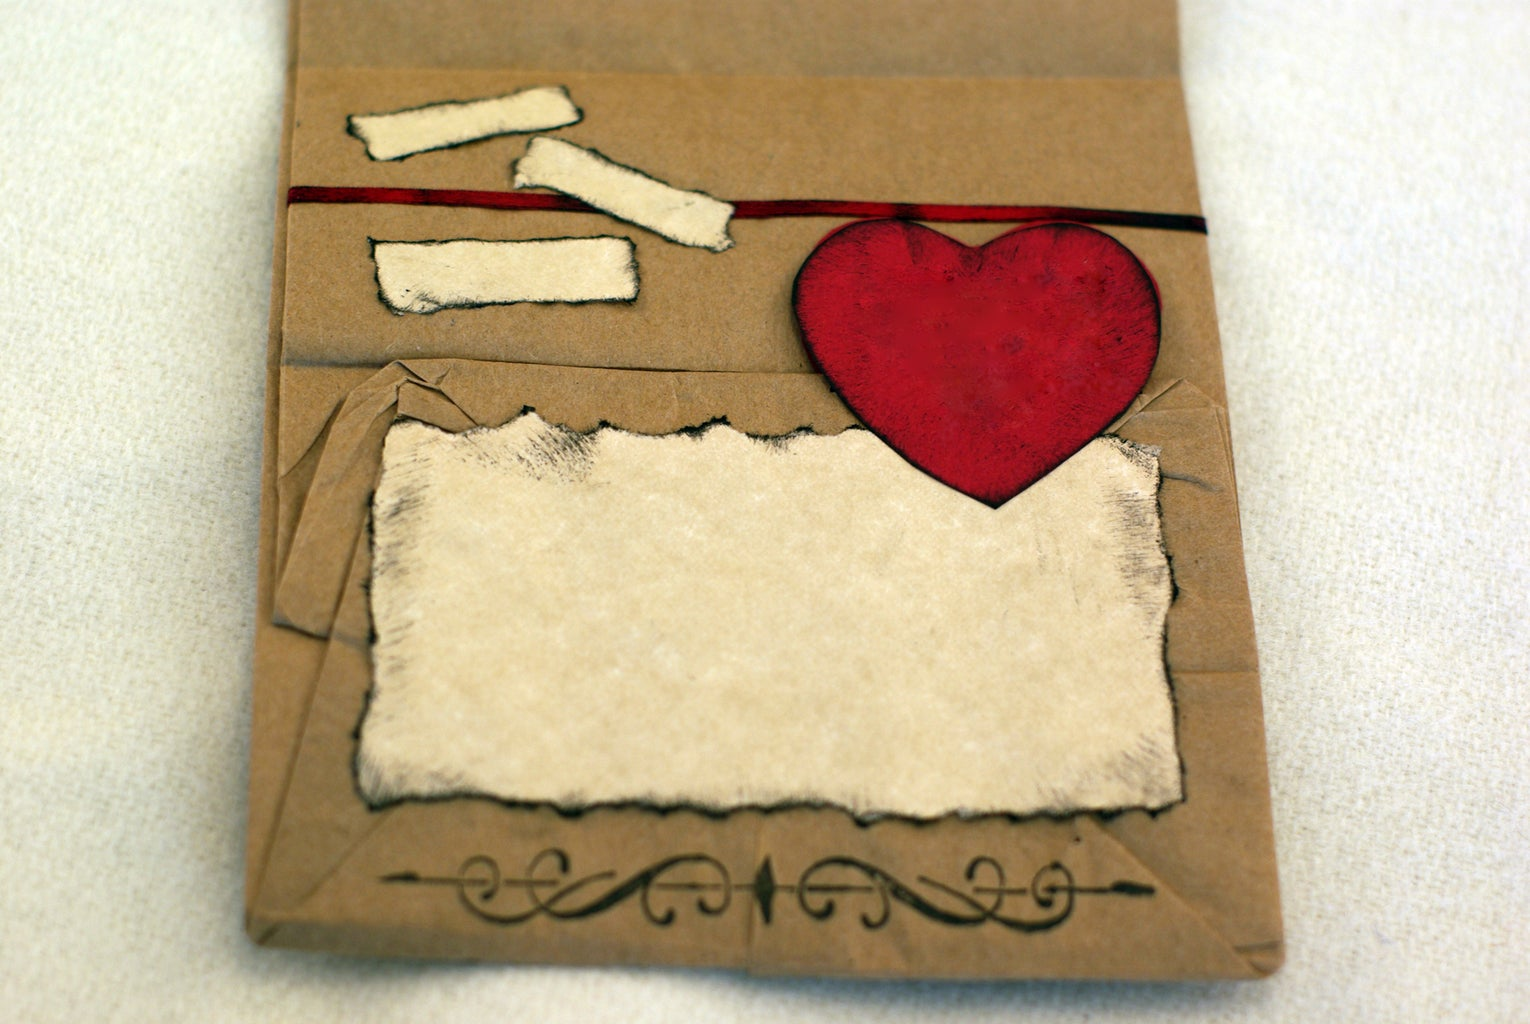 Decorate and Place Small Papers